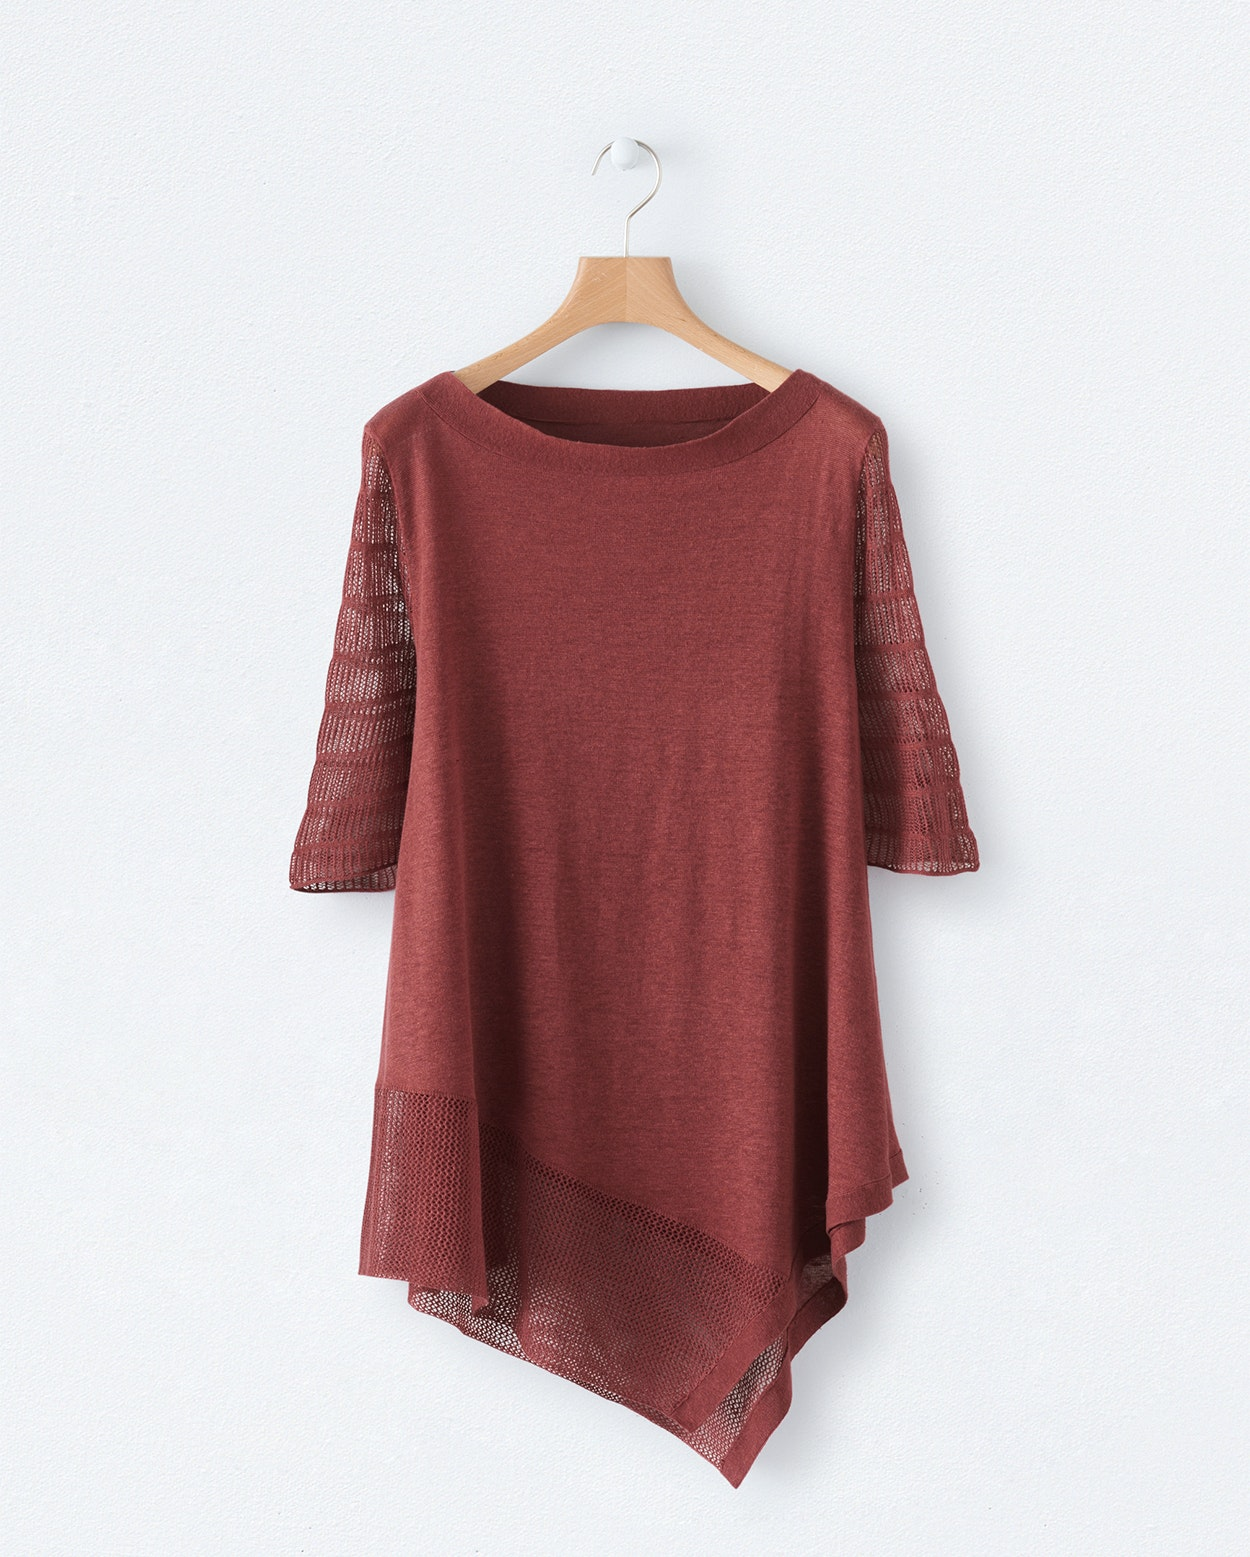 92b4eaf381 ... Product Image of Dipped hem linen sweater ...